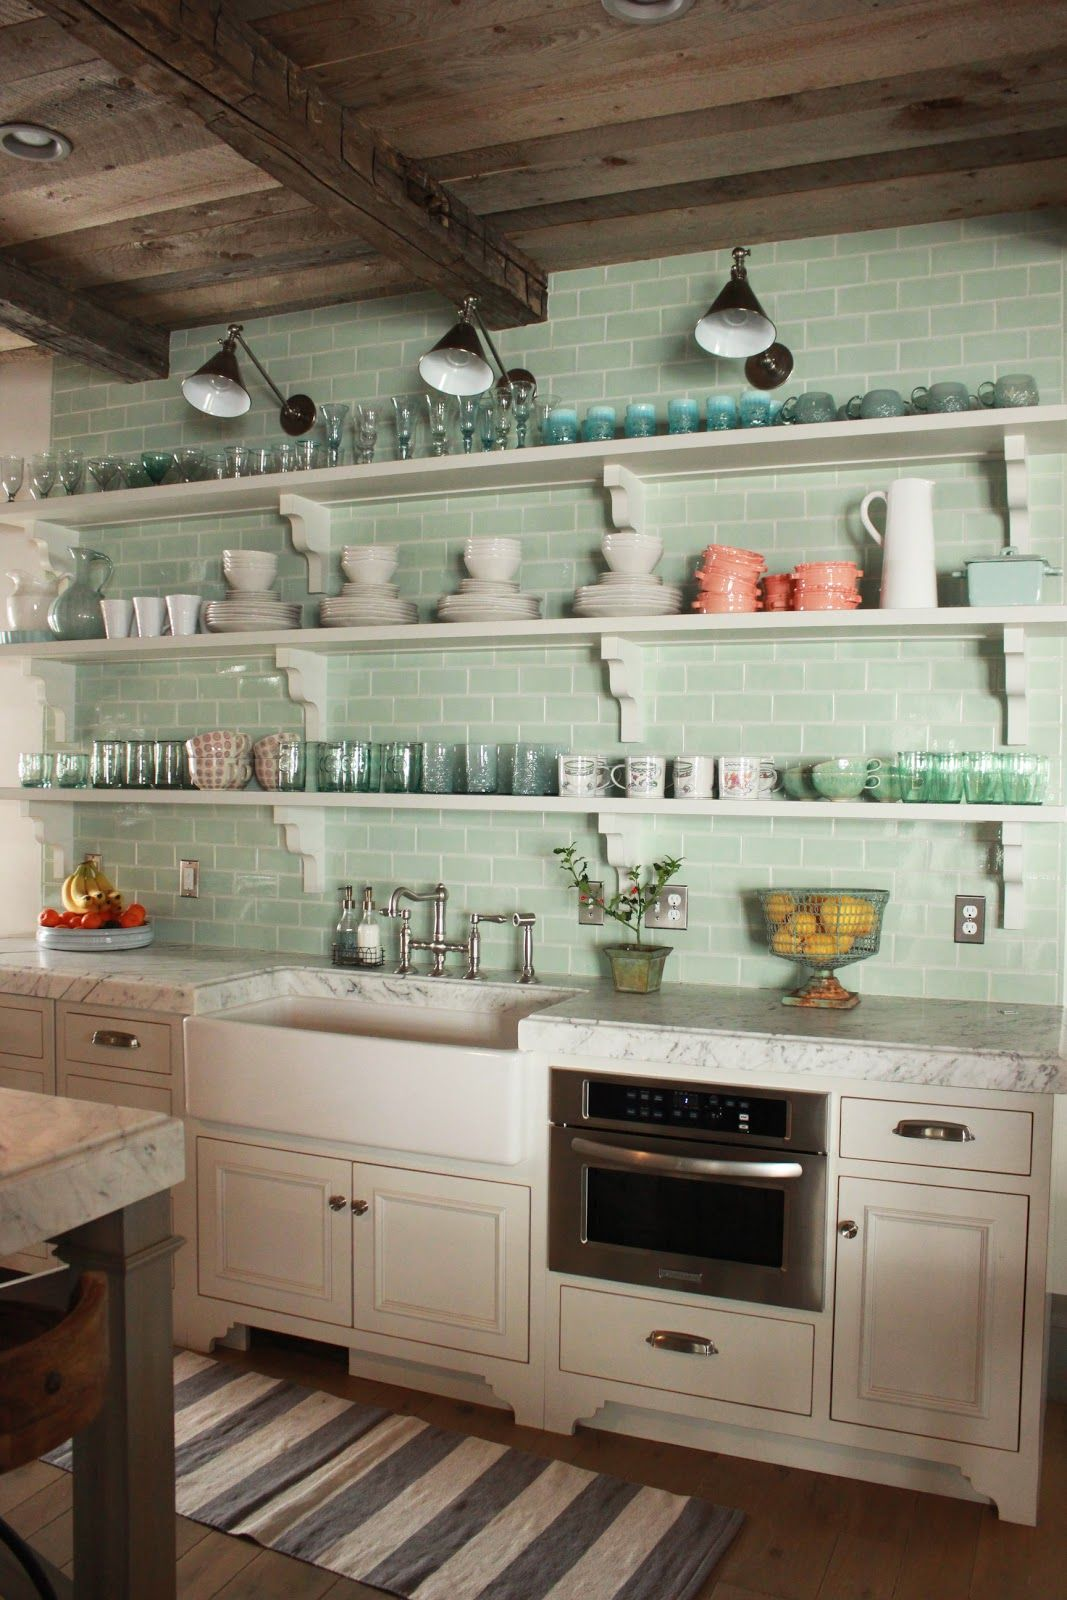 Love a mint green subway tile nesting pinterest subway tiles love a mint green subway tile doublecrazyfo Image collections